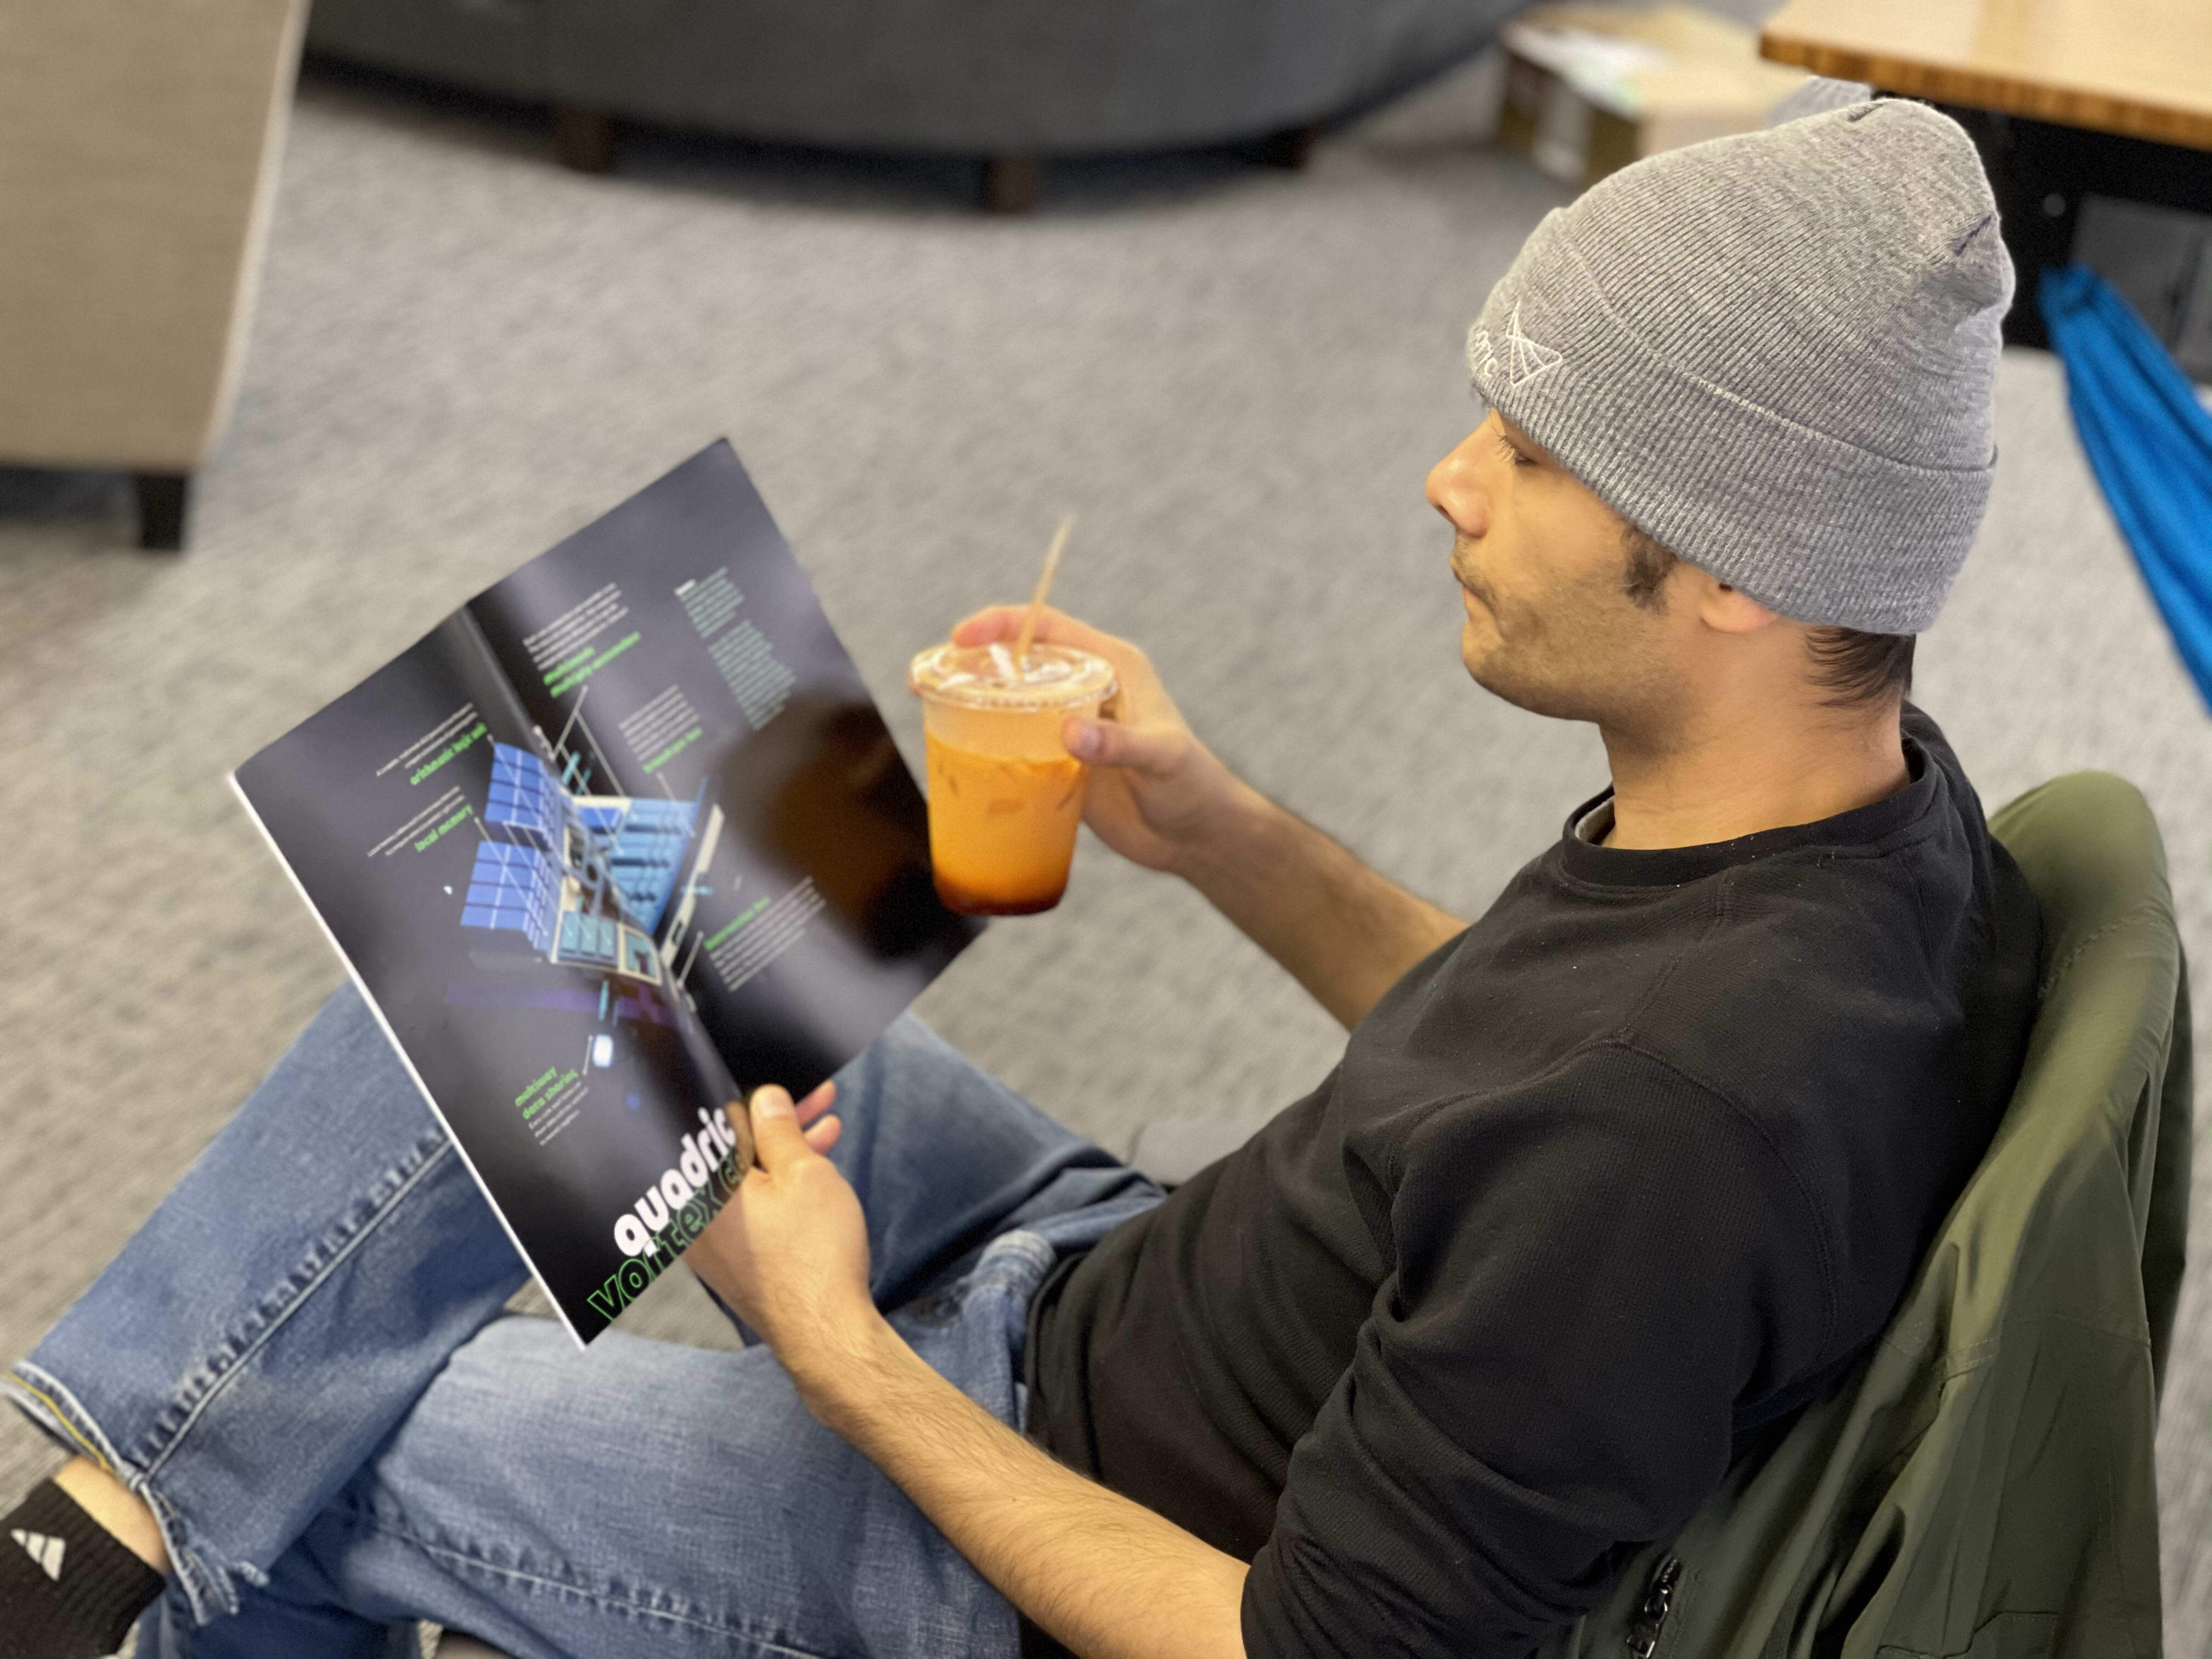 Our CEO, Veerbhan Kheterpal, holding a print magazine featuring quadric's technology.